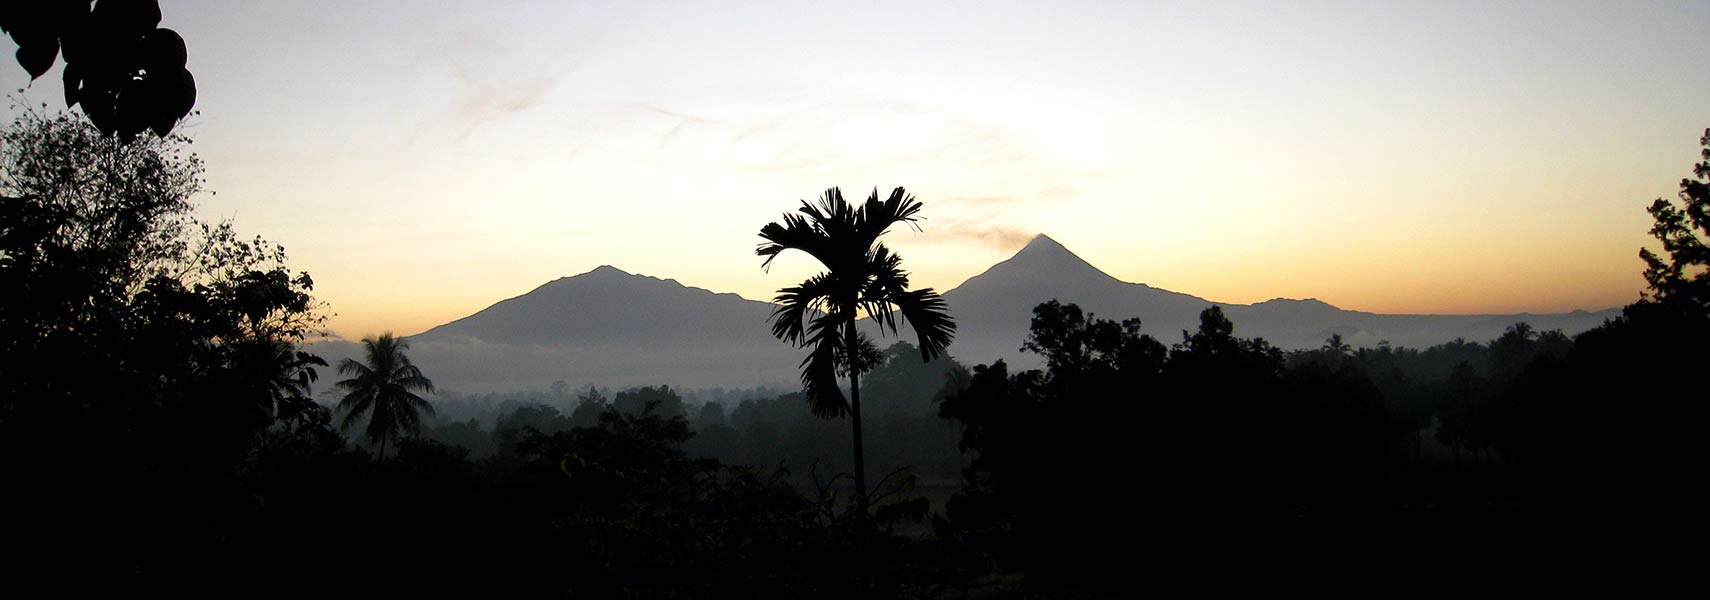 View of Mount Merapi from Borobudur, Java, Indonesia